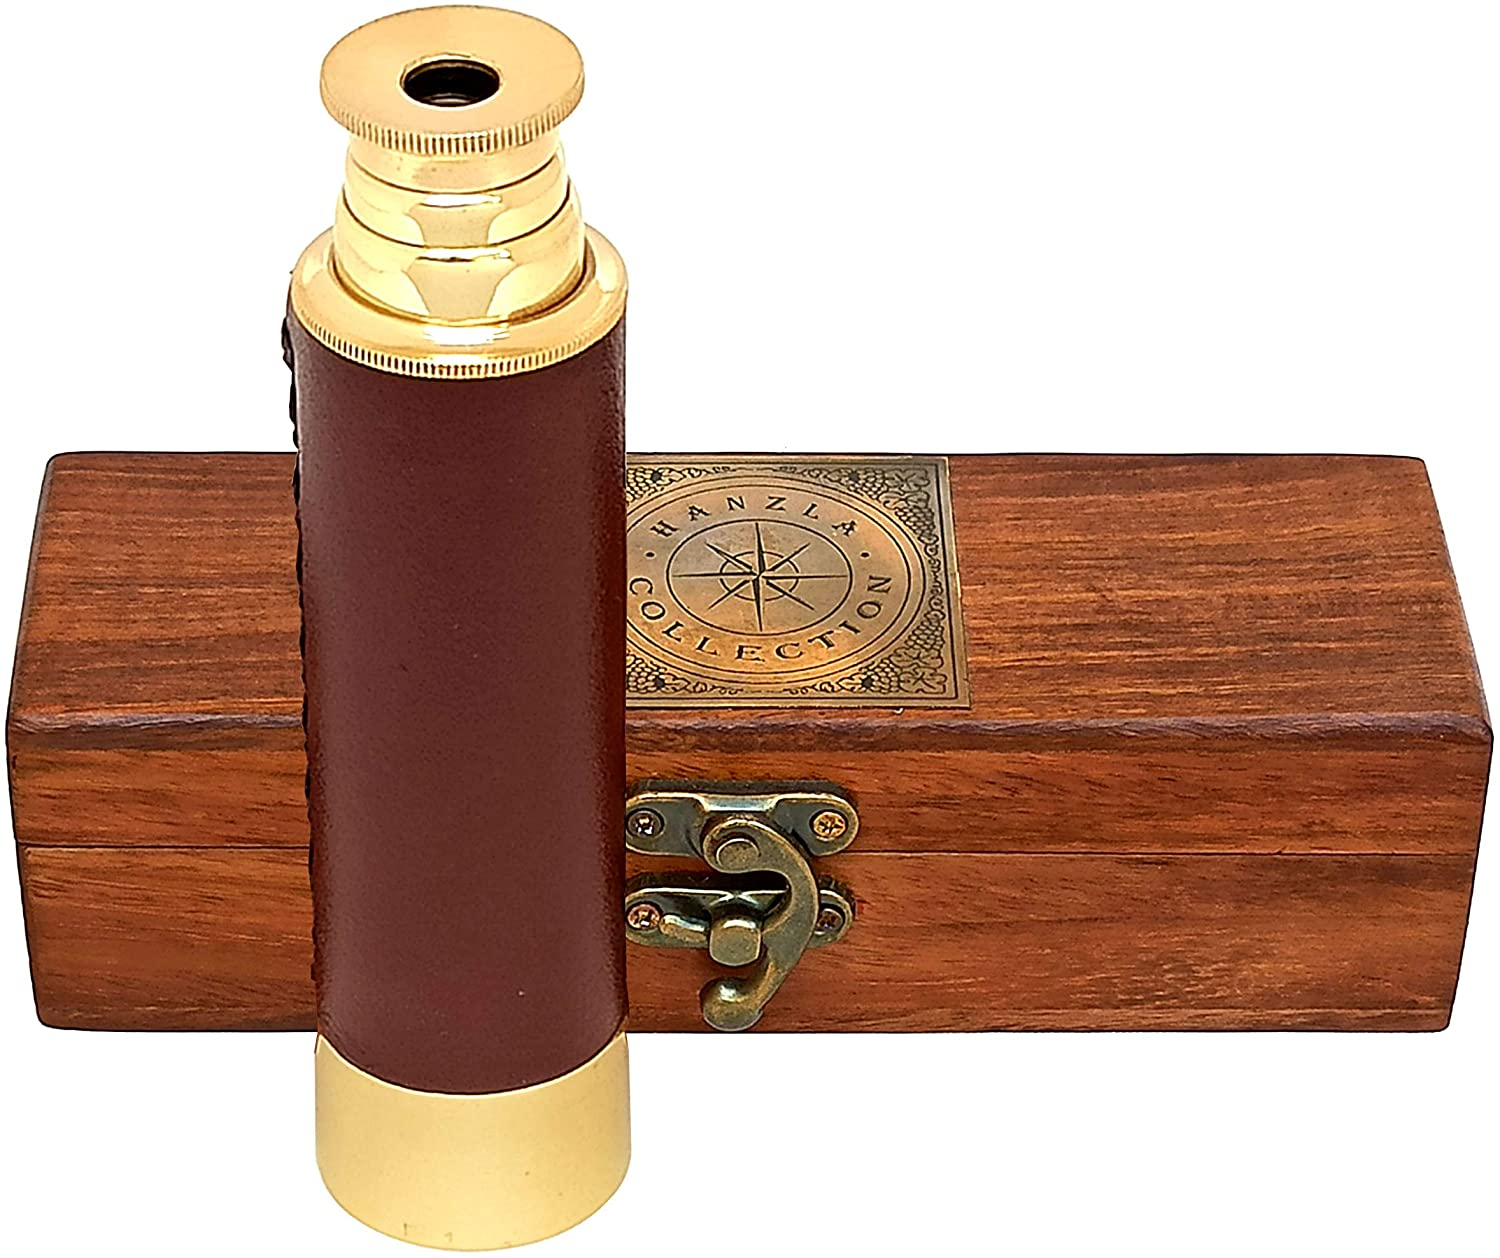 Hanzla Collection Leather Stitched Polished Brass Handheld Telescope 14